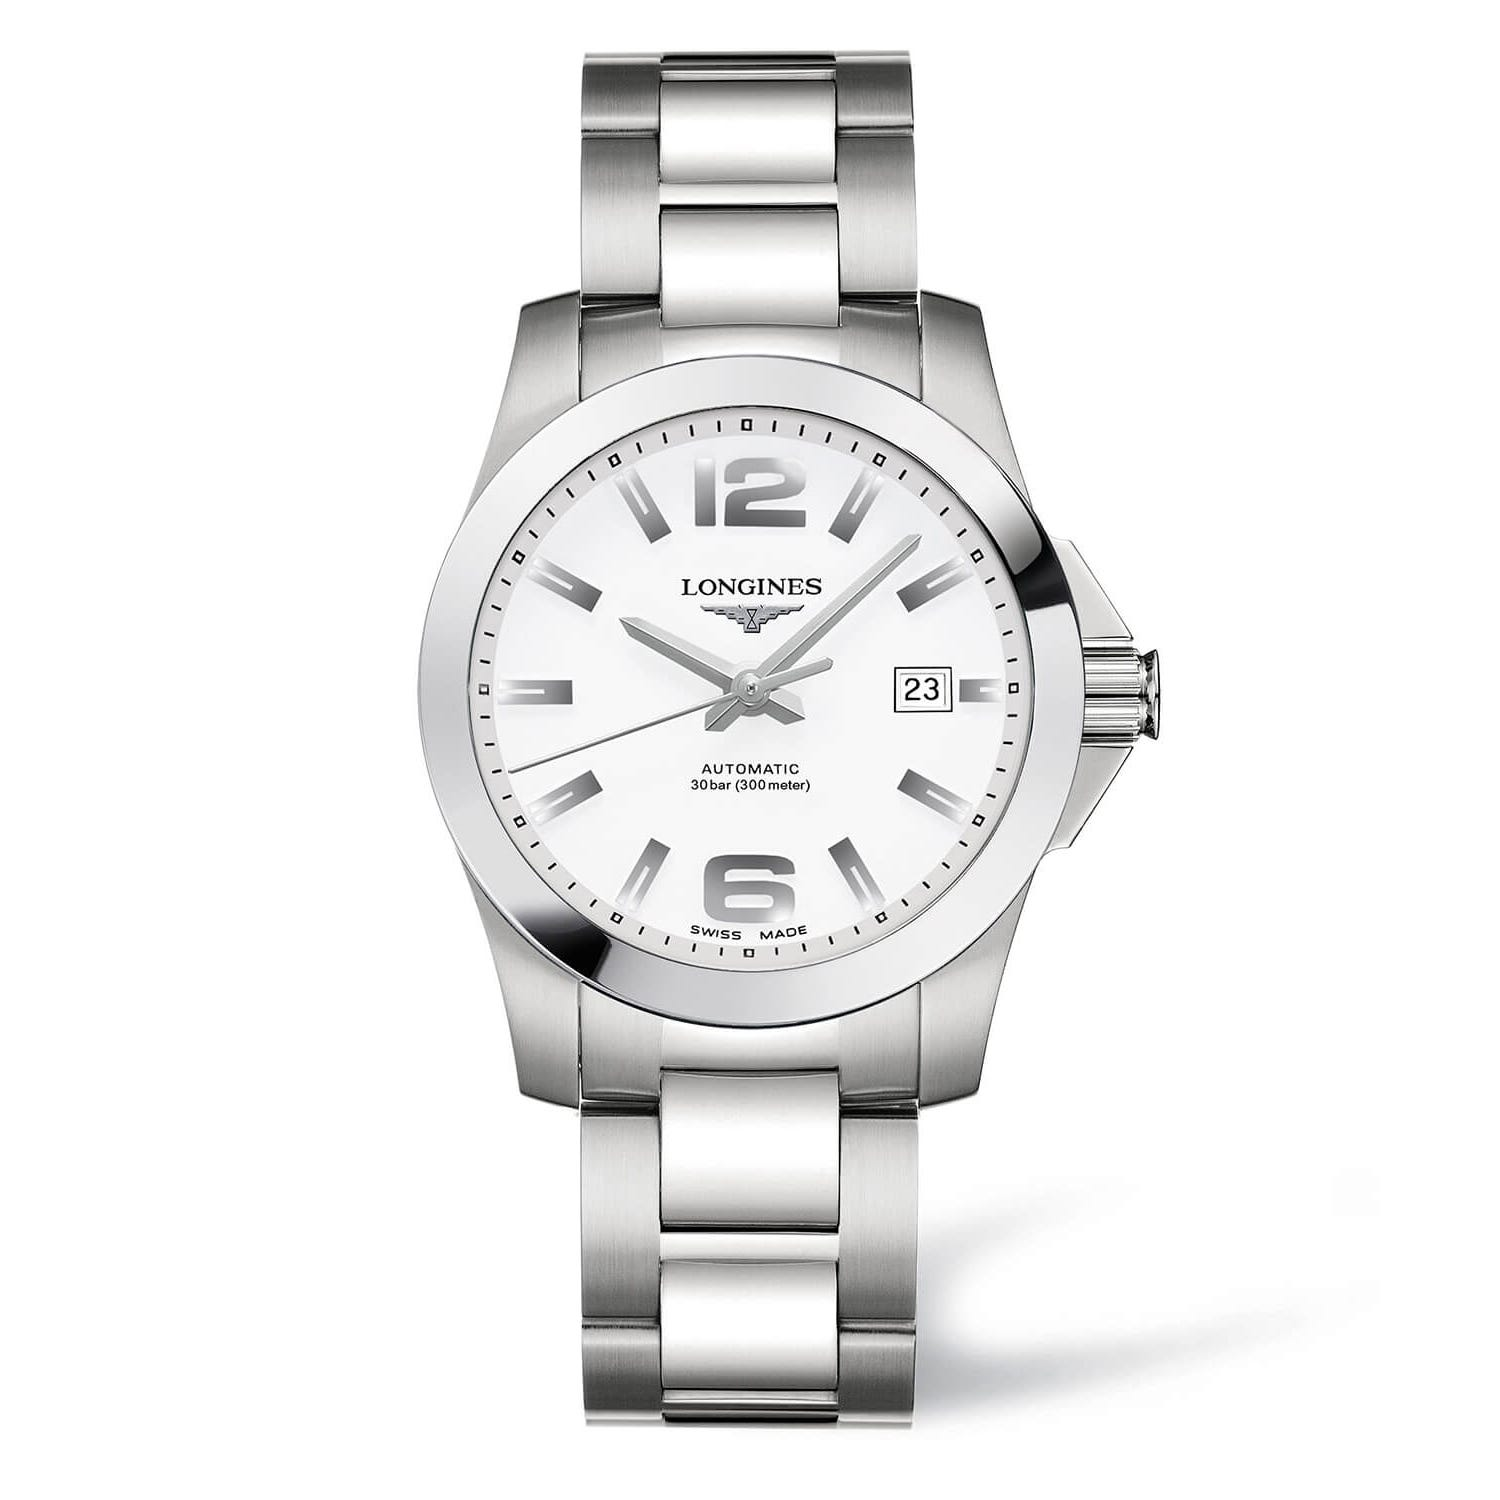 Longines Conquest men's automatic white dial stainless steel bracelet watch